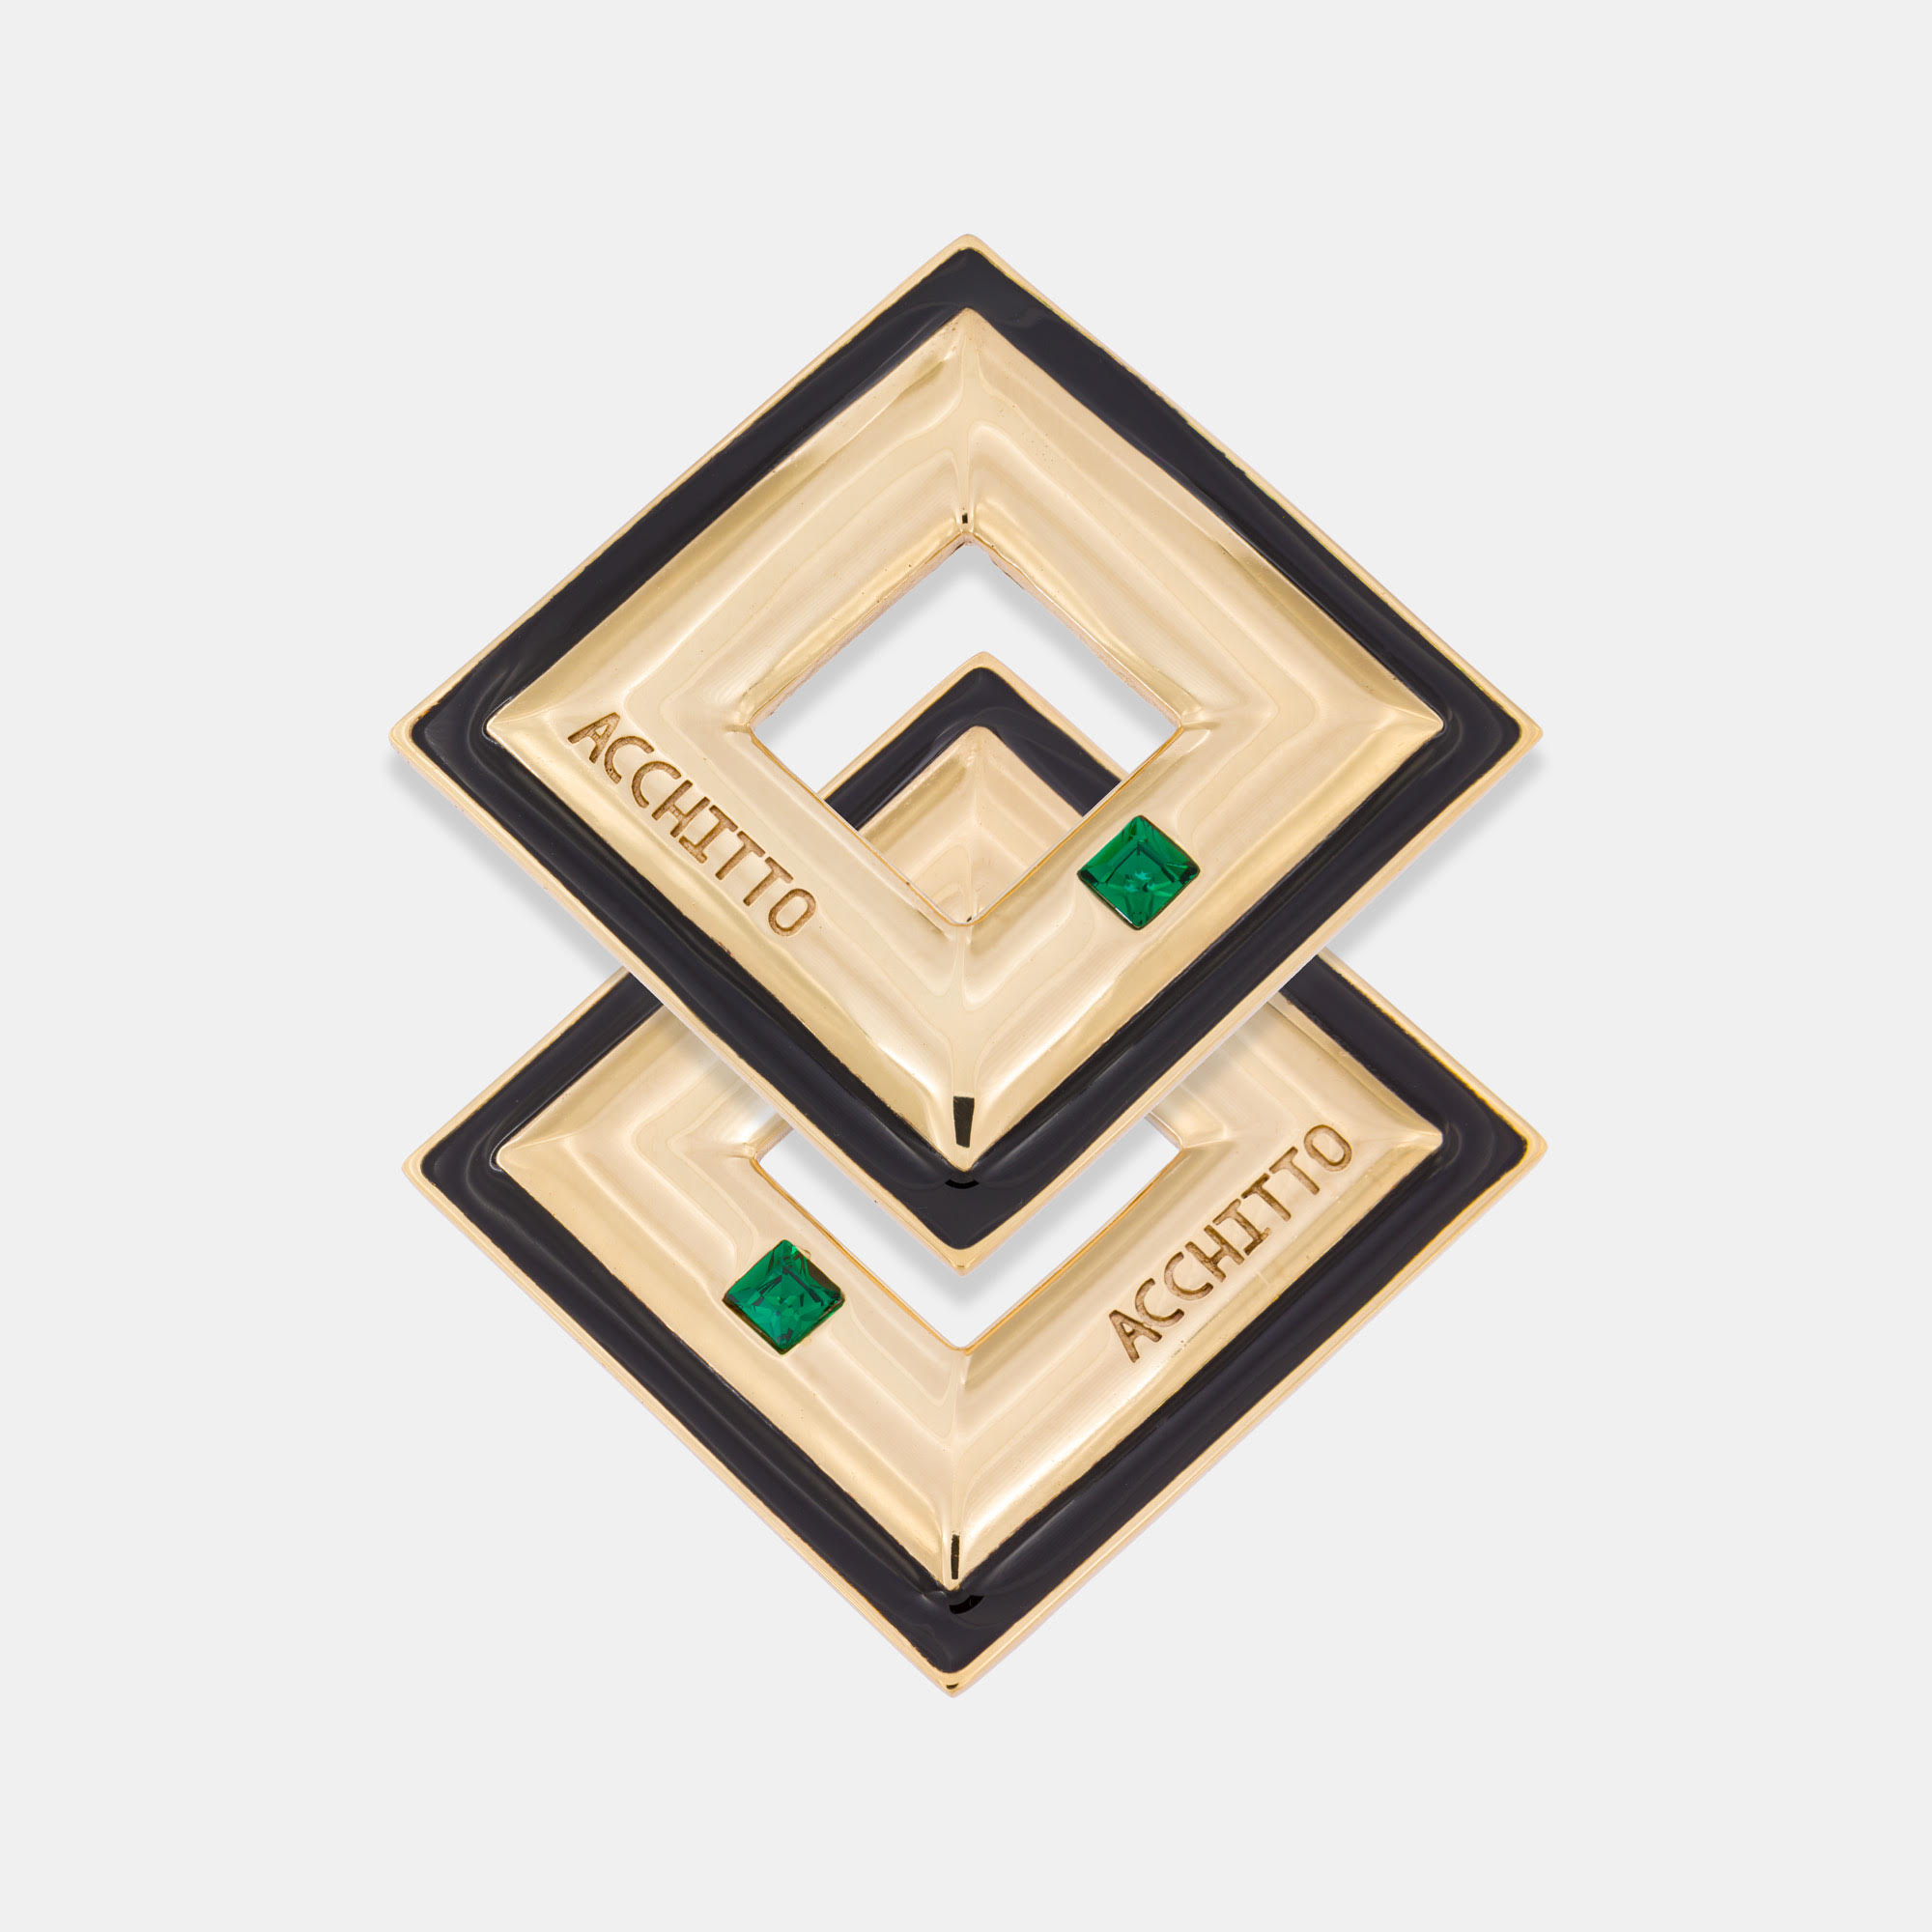 Aequour Square Earrings by Acchitto on curated-crowd.com